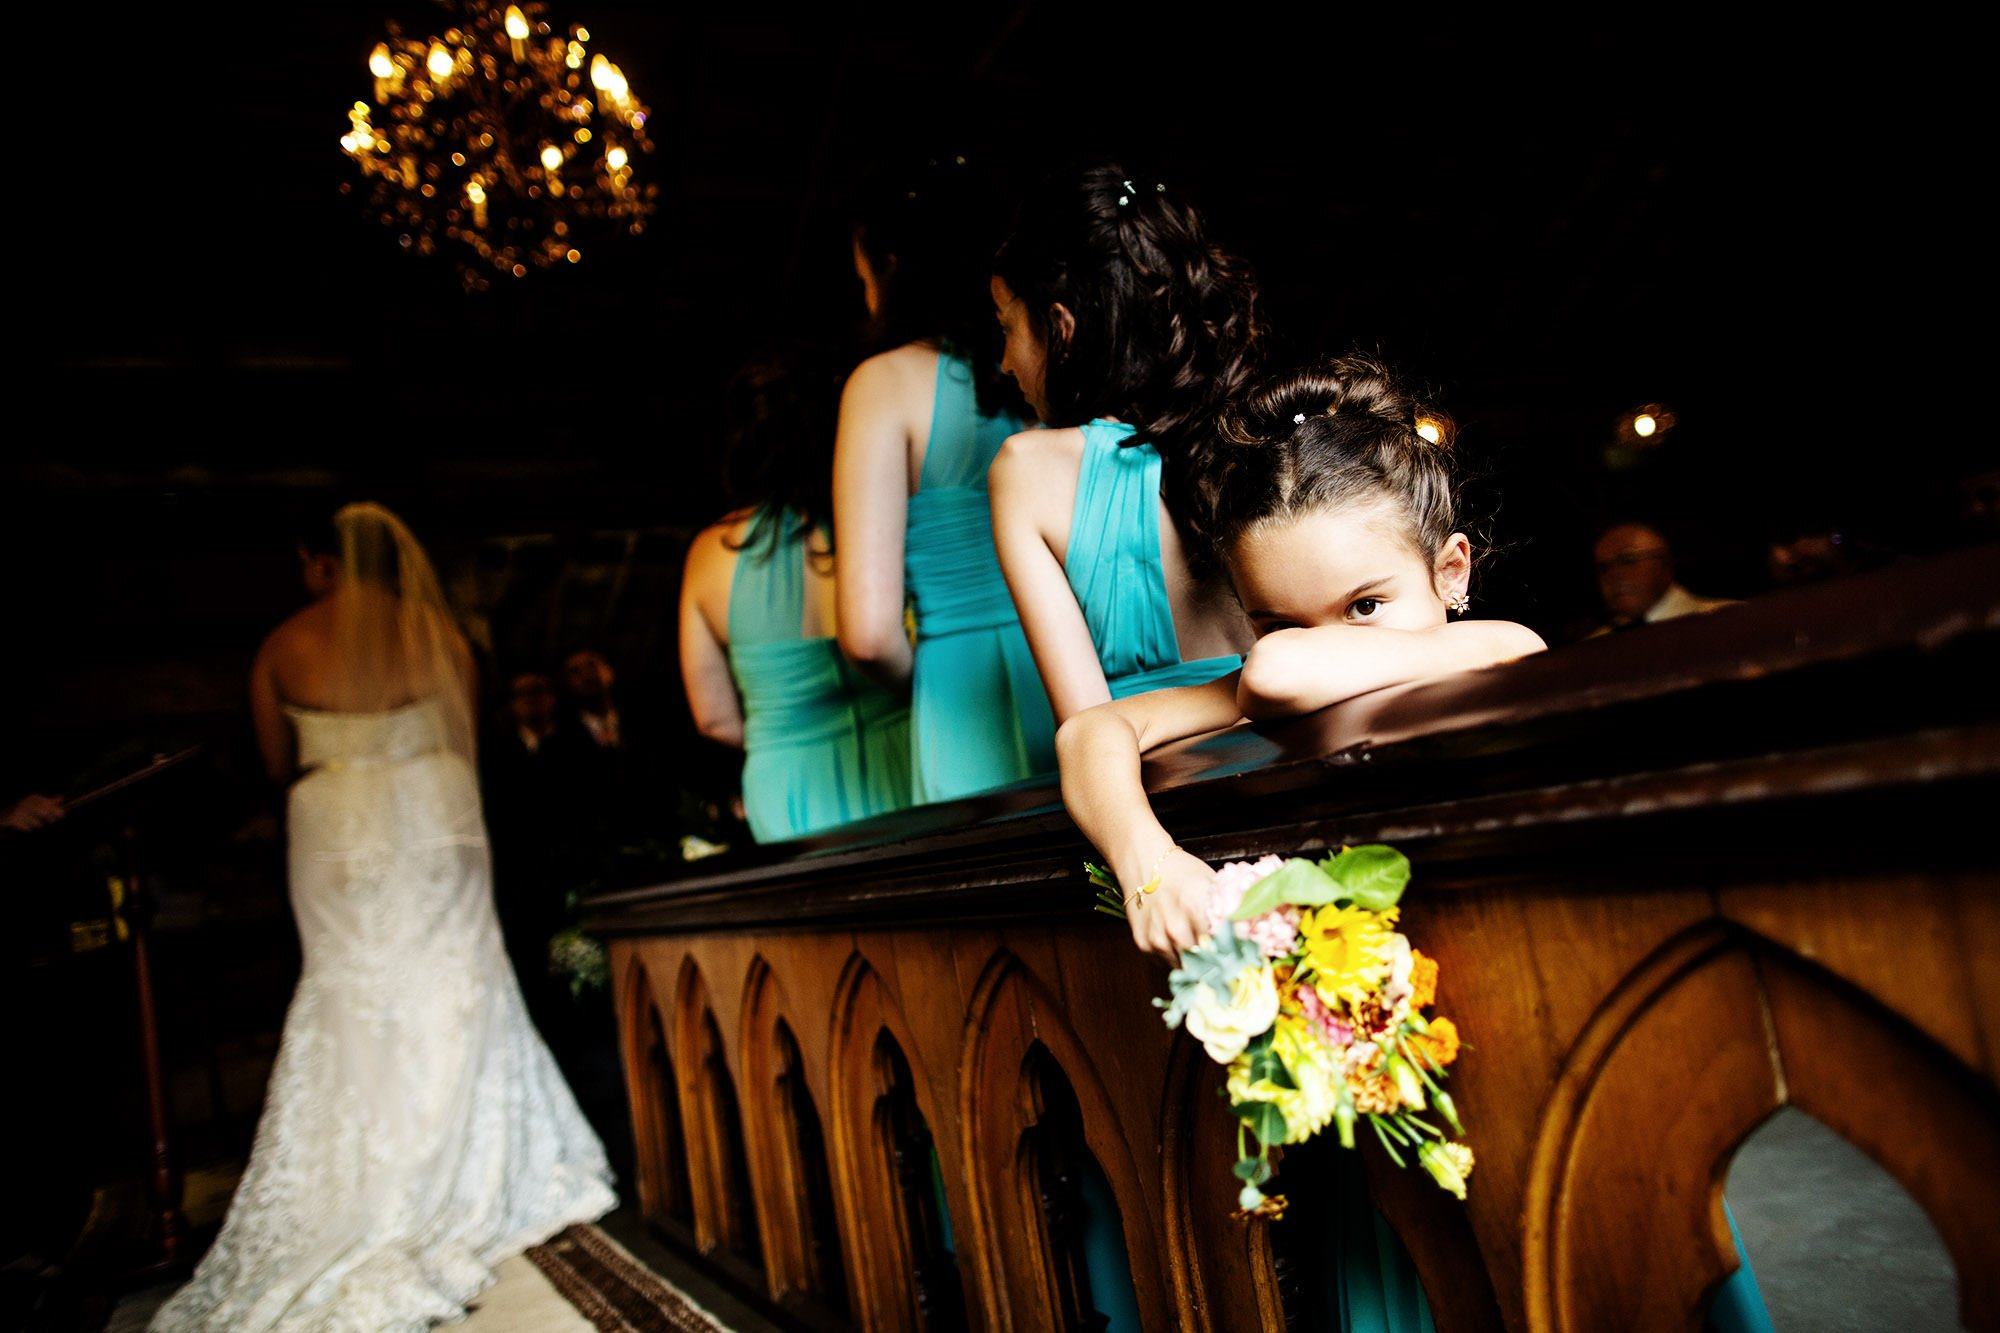 The flower girl waits for the ceremony to conclude.